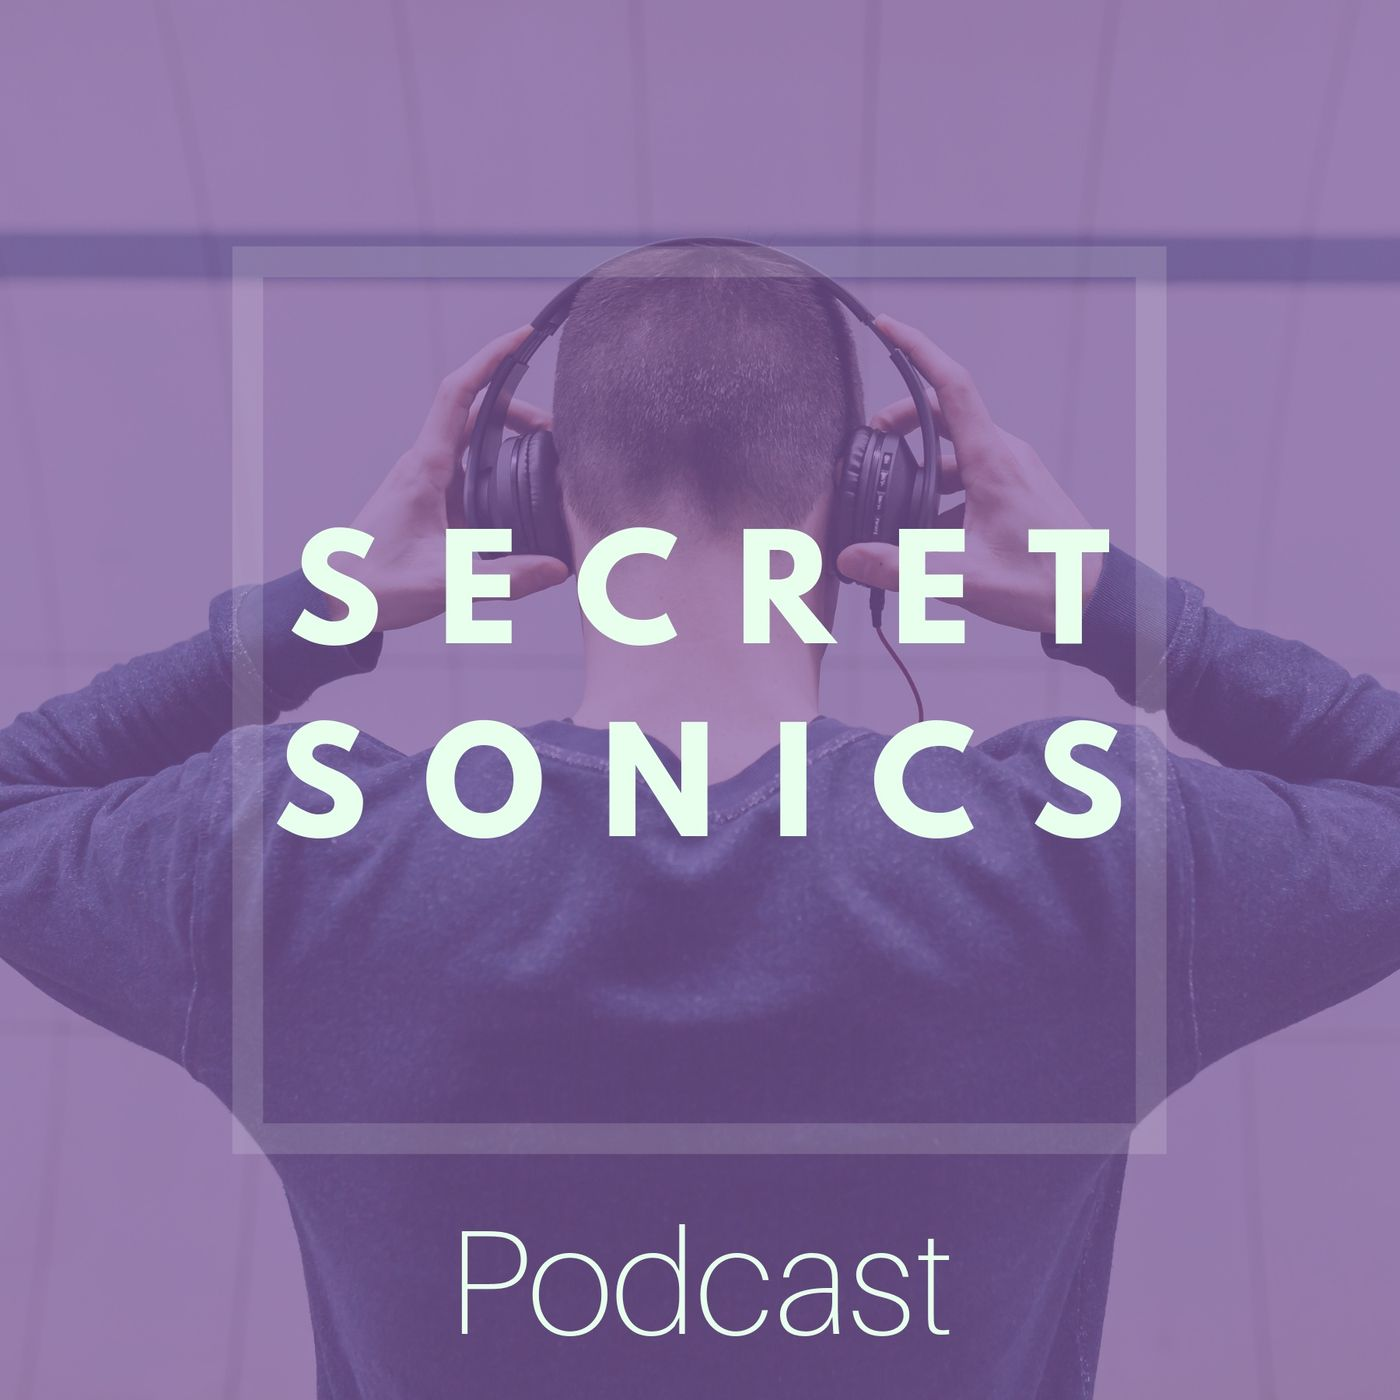 Secret Sonics 012 - Dan Mufson